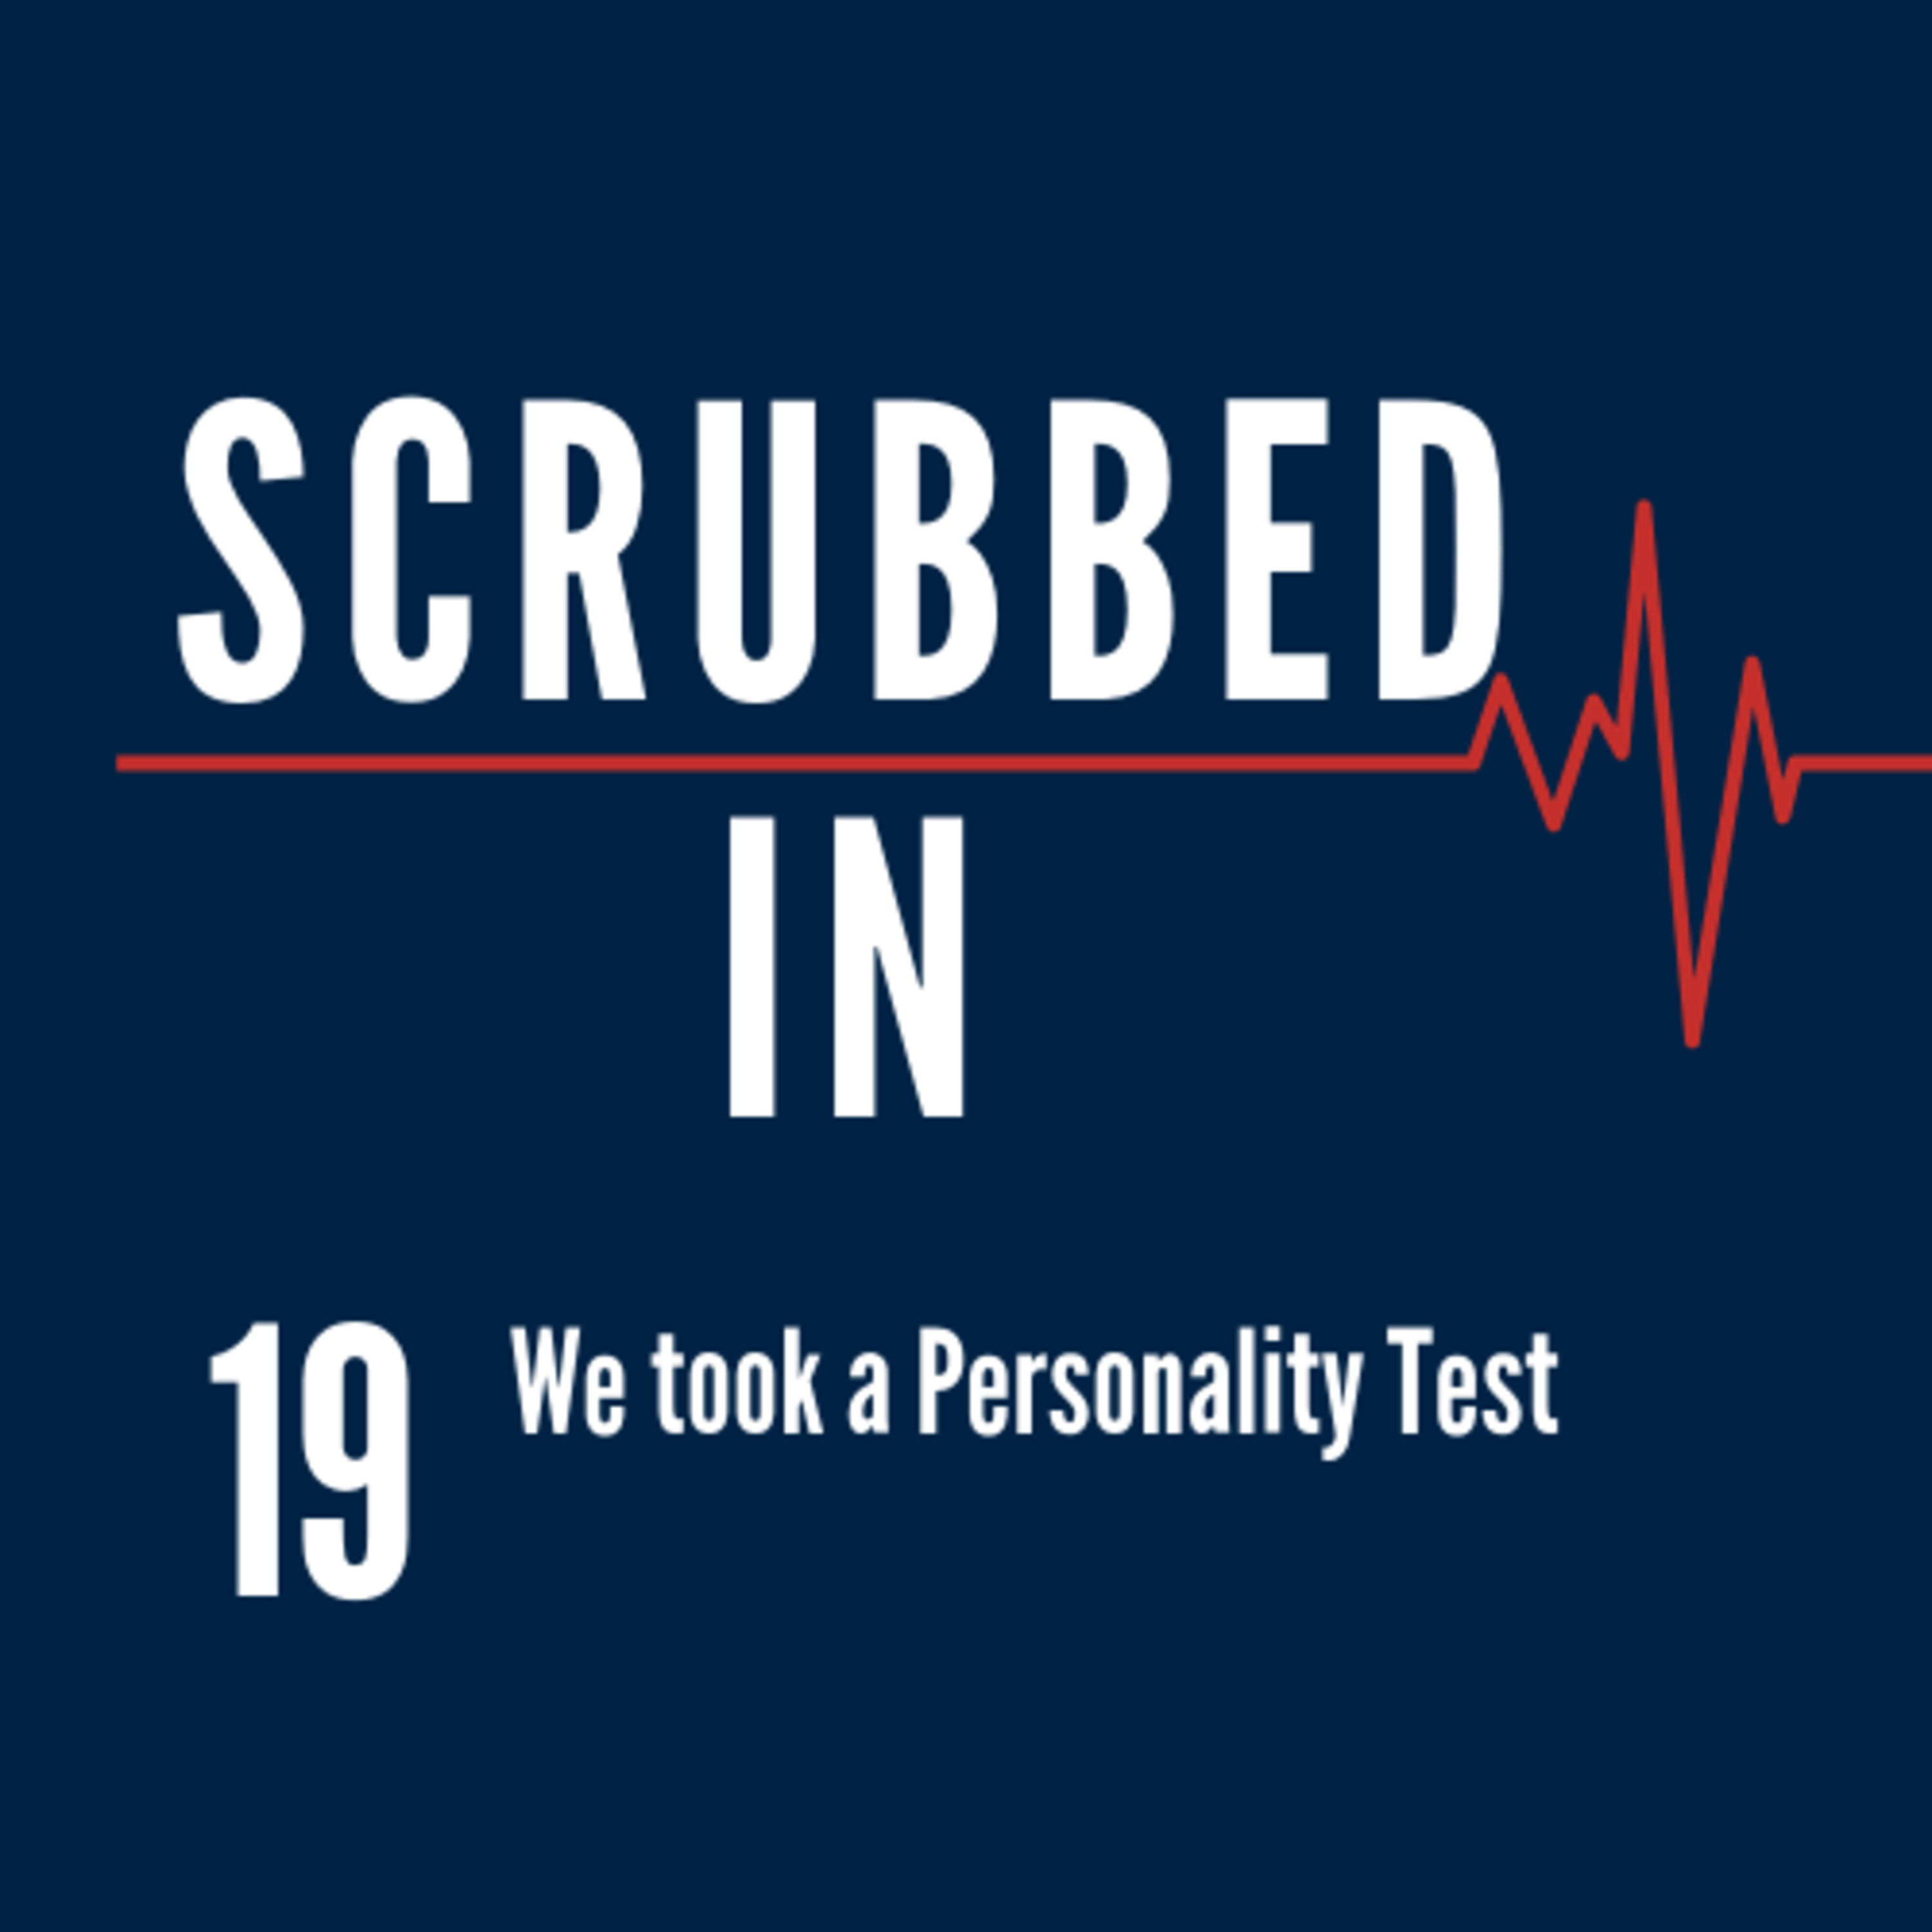 Scrubbed In - We took a Personality Test